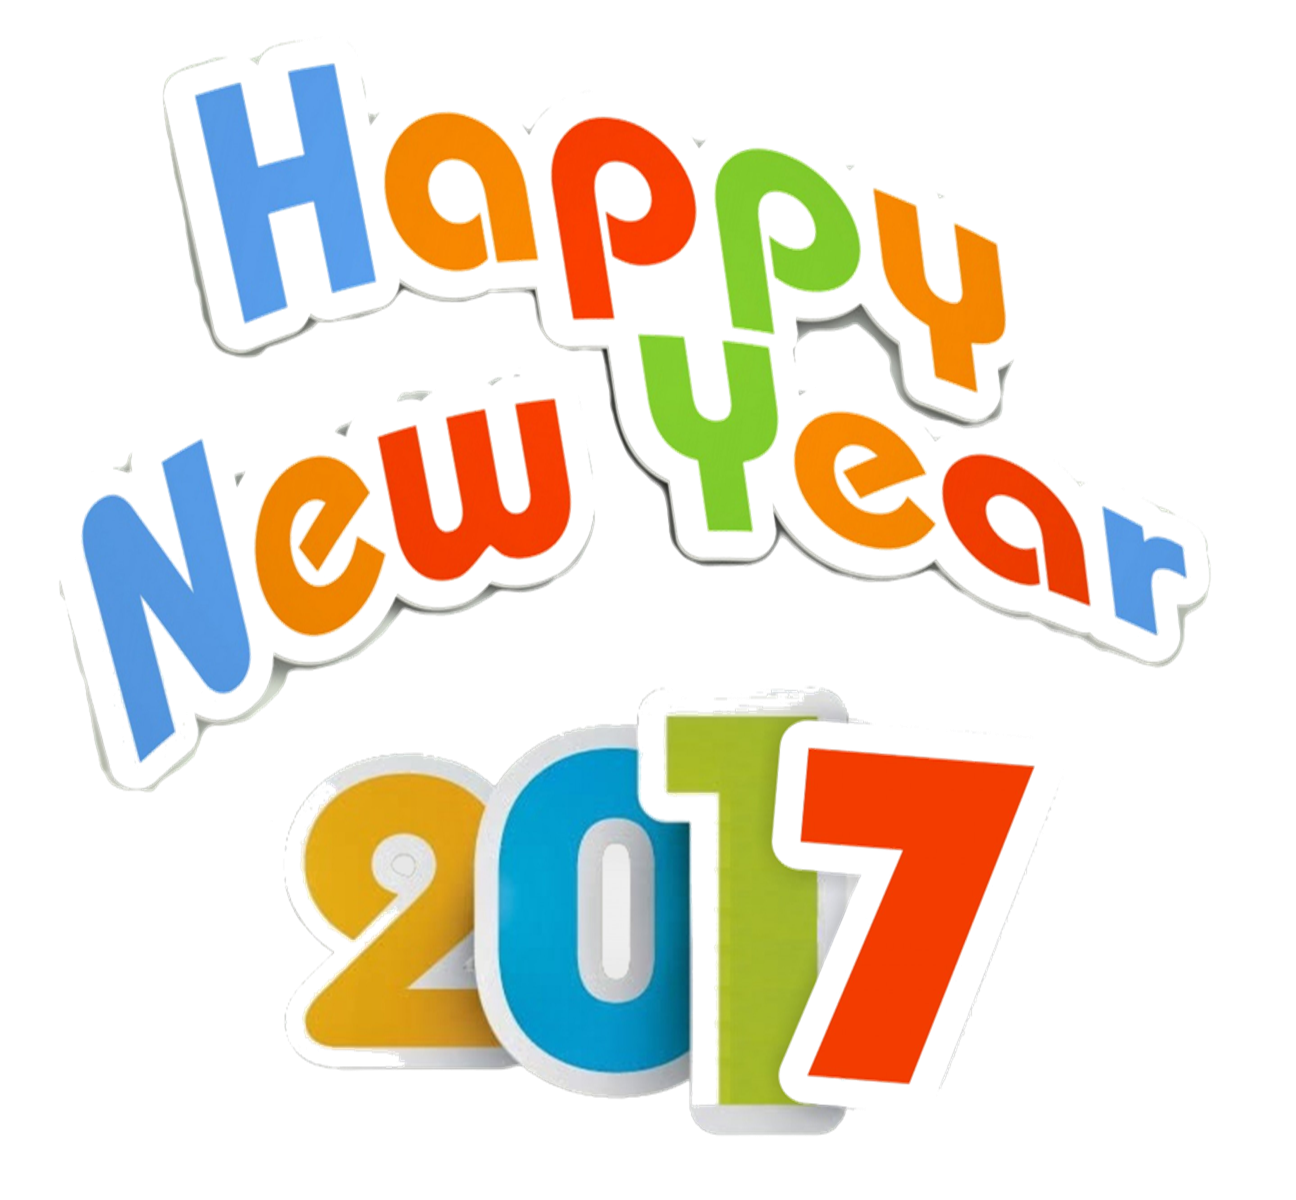 2016 new years clipart jpg freeuse download New years clipart 2016 clipart images gallery for free download ... jpg freeuse download